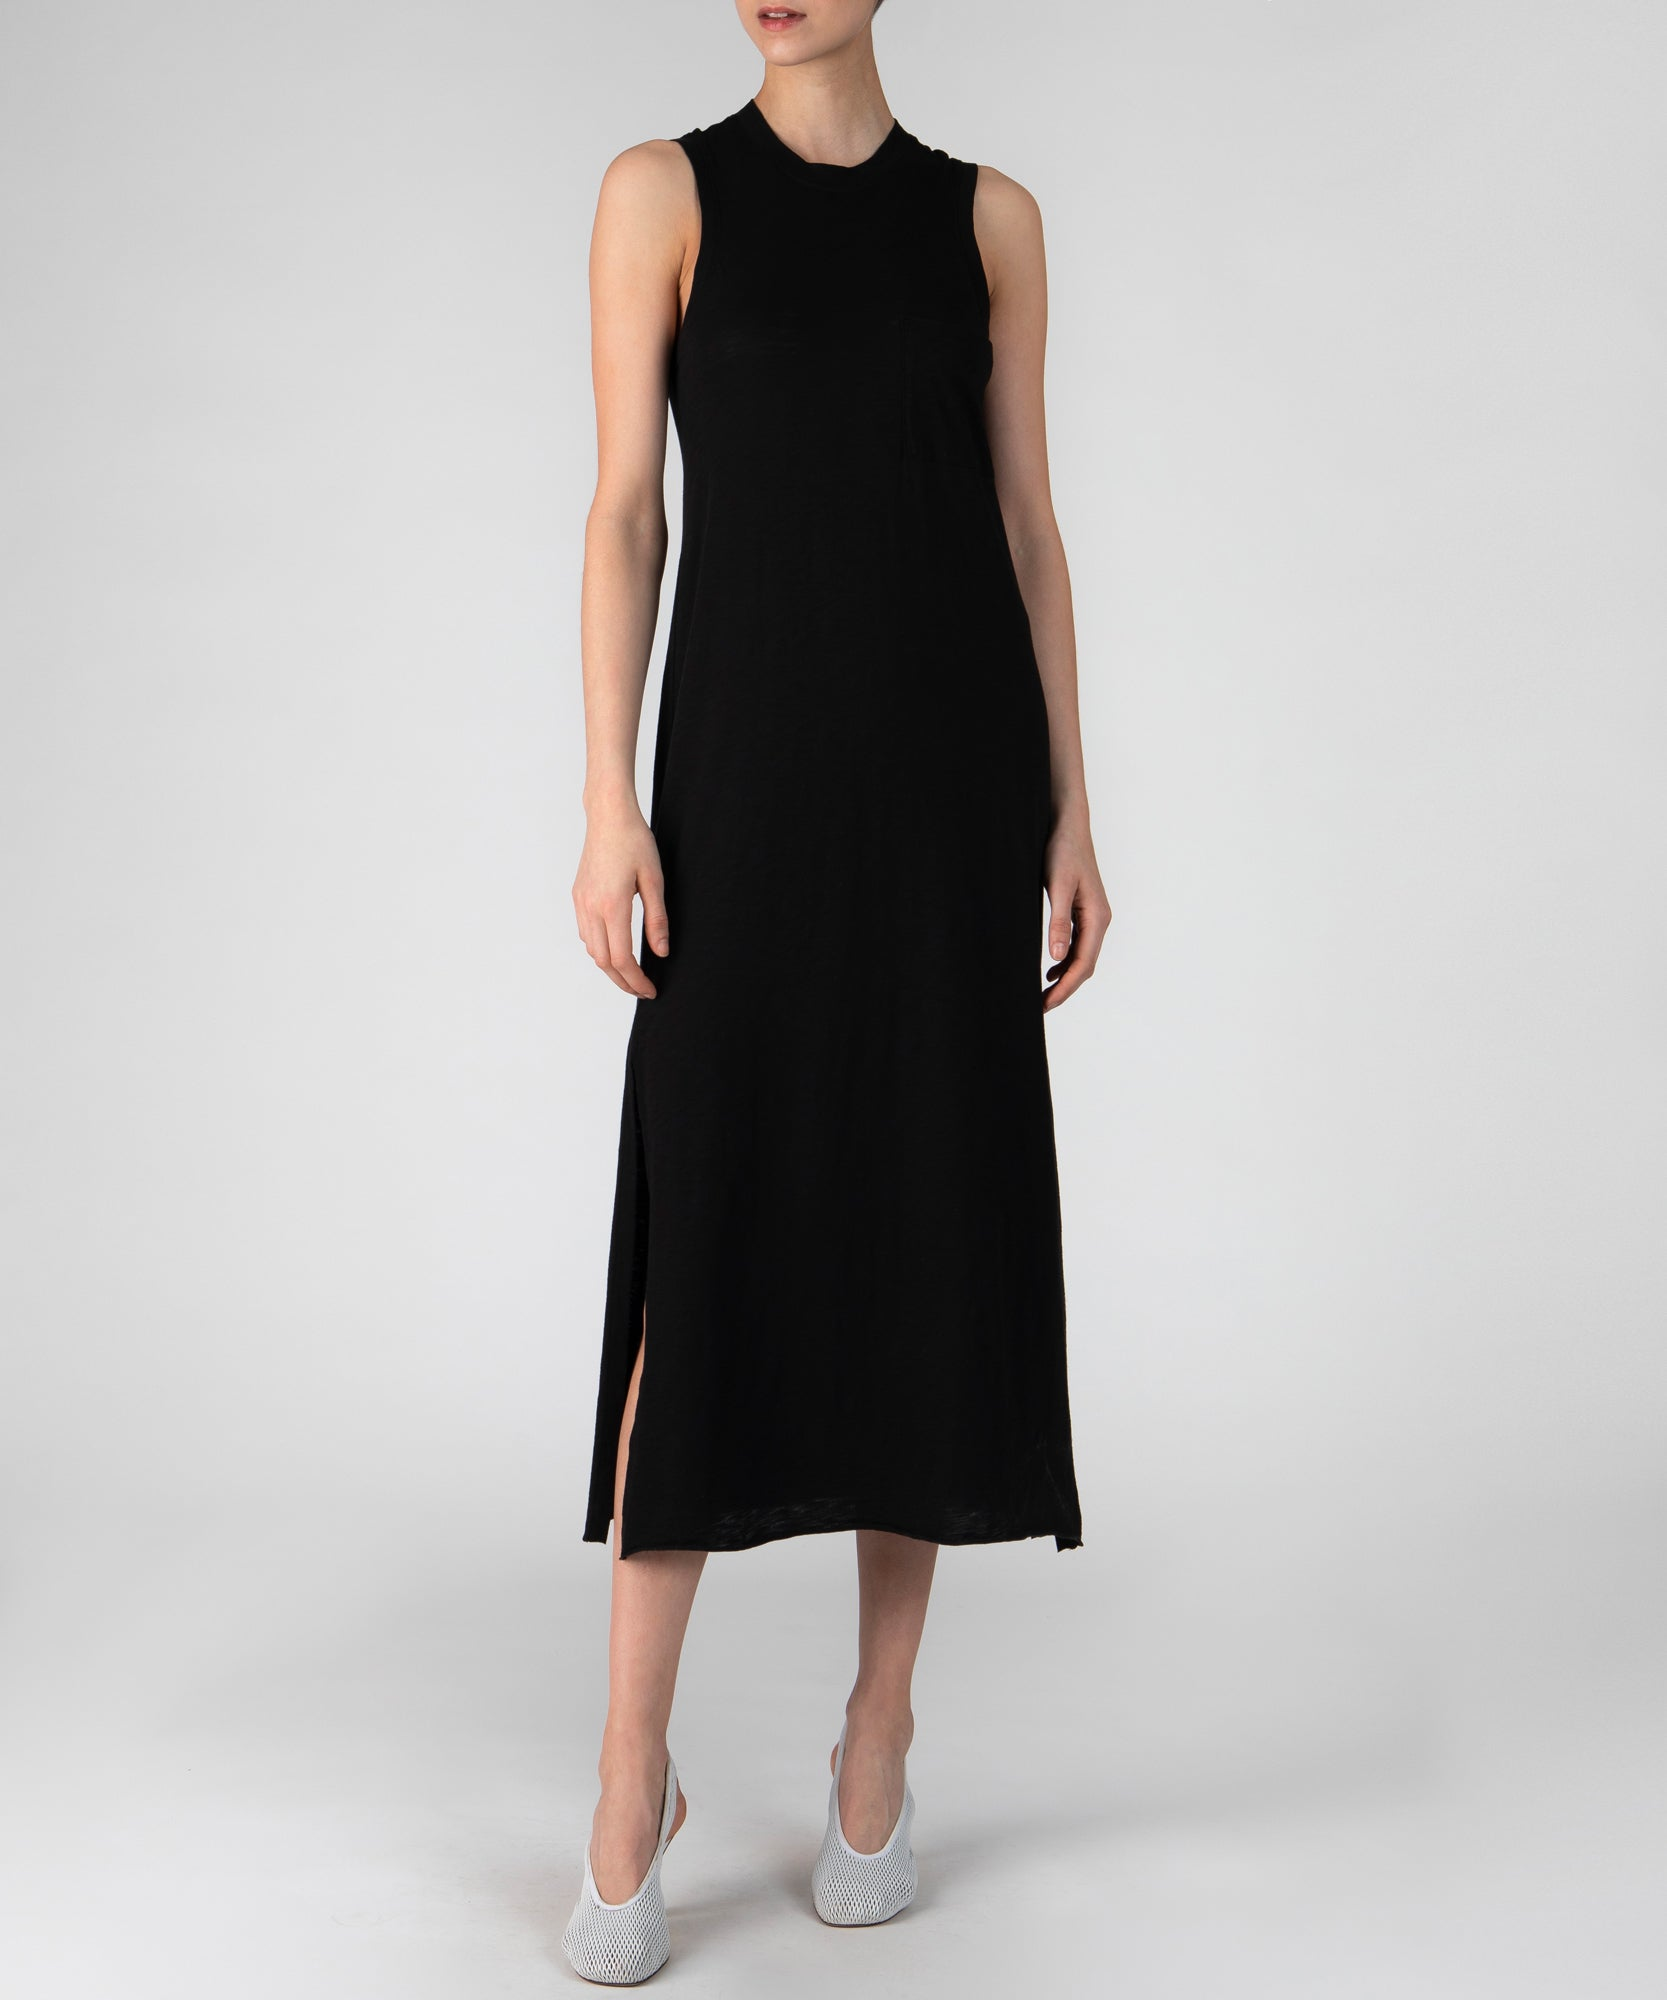 Black Sleeveless Maxi Dress - Women's Casual Dress by ATM Anthony Thomas Melillo